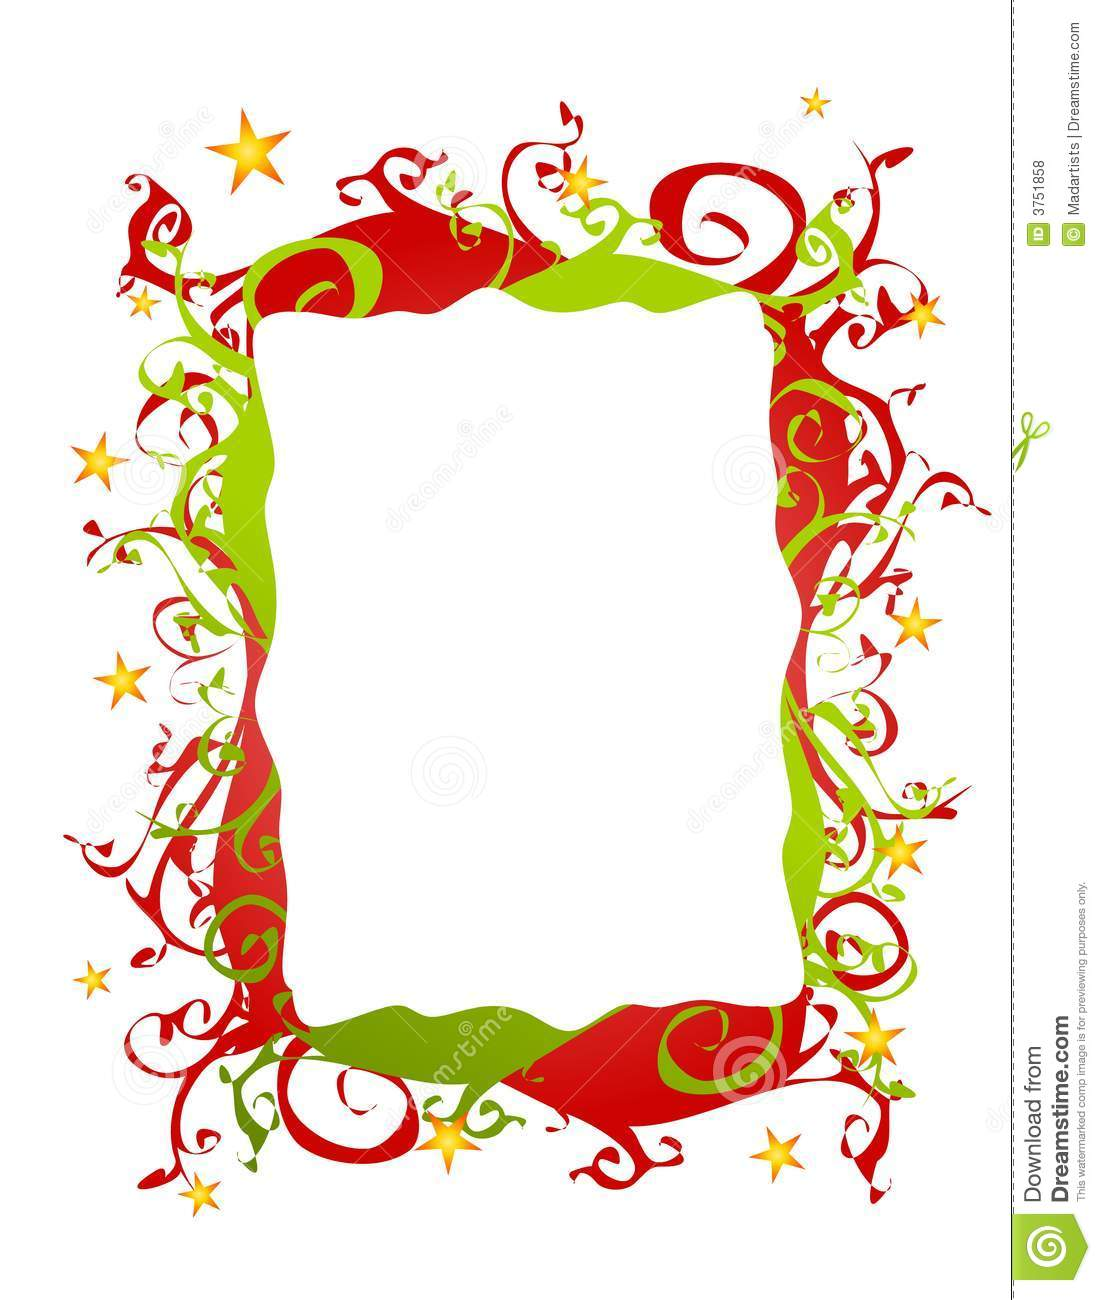 clipart birthday borders and frames ; frames-free-clipart-6